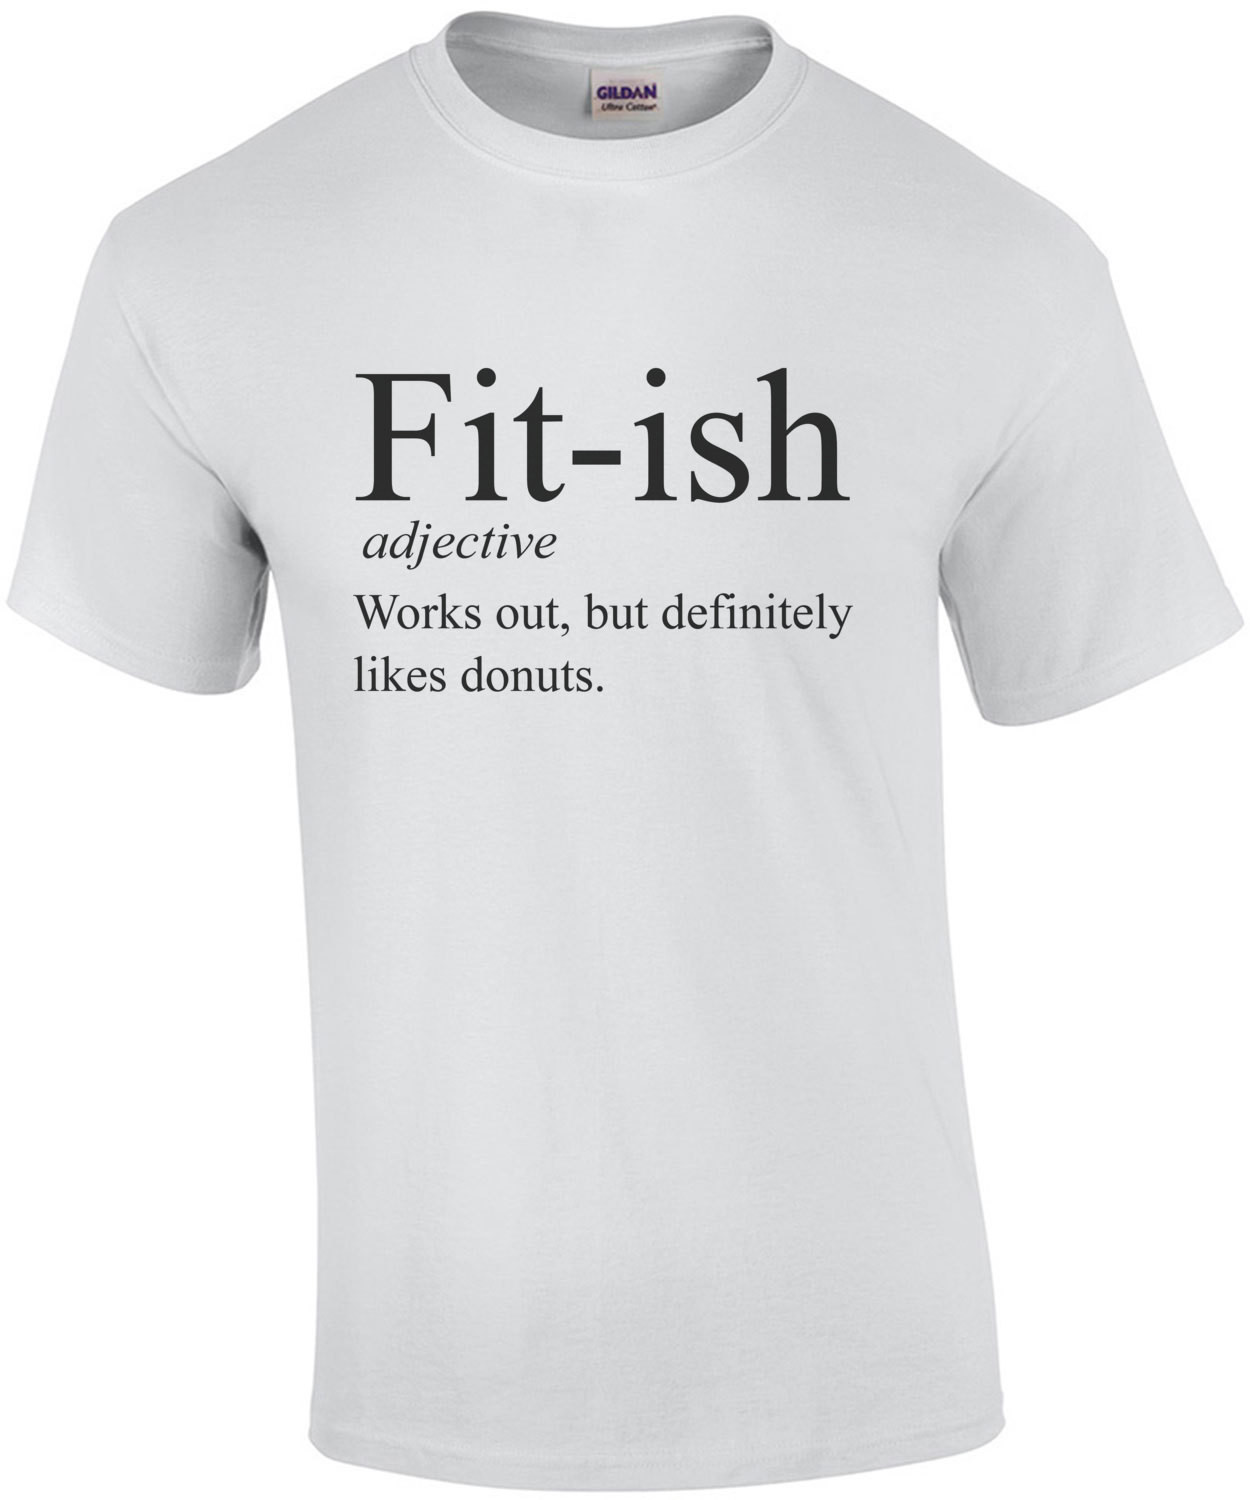 Fit-ish - adjective - works out, but definitely likes donuts - funny work out / exercise t-shirt